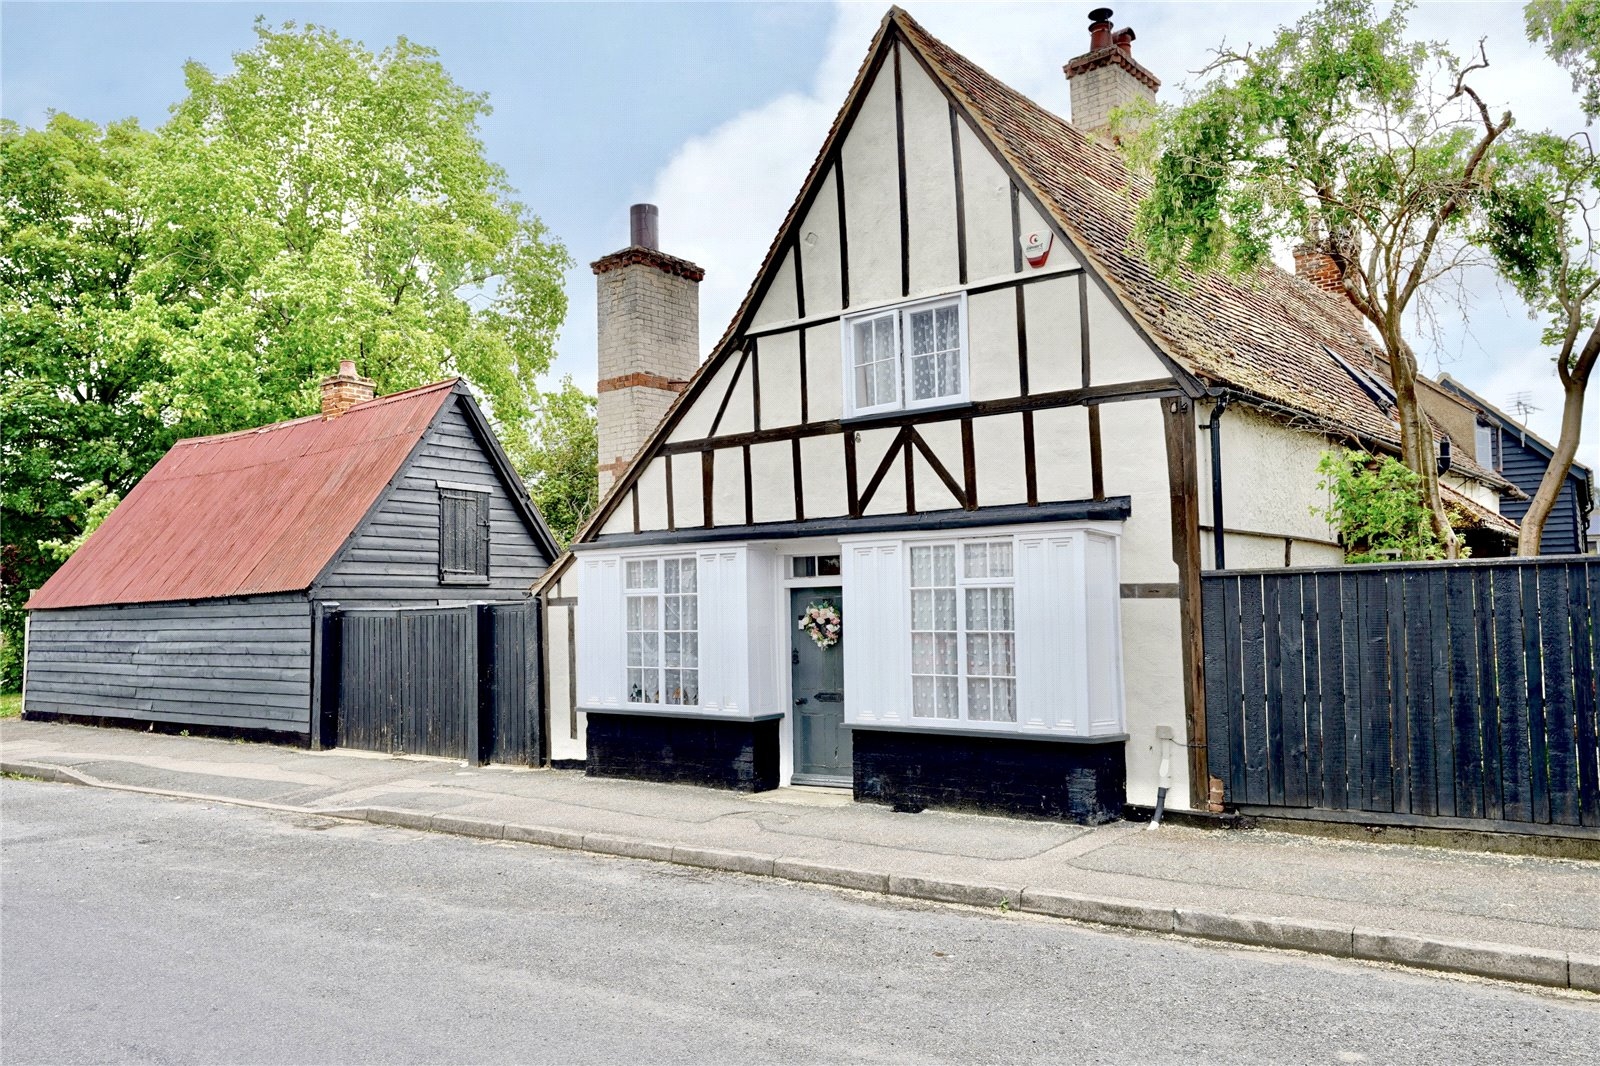 3 bed house for sale in London Road, Sandy, SG19